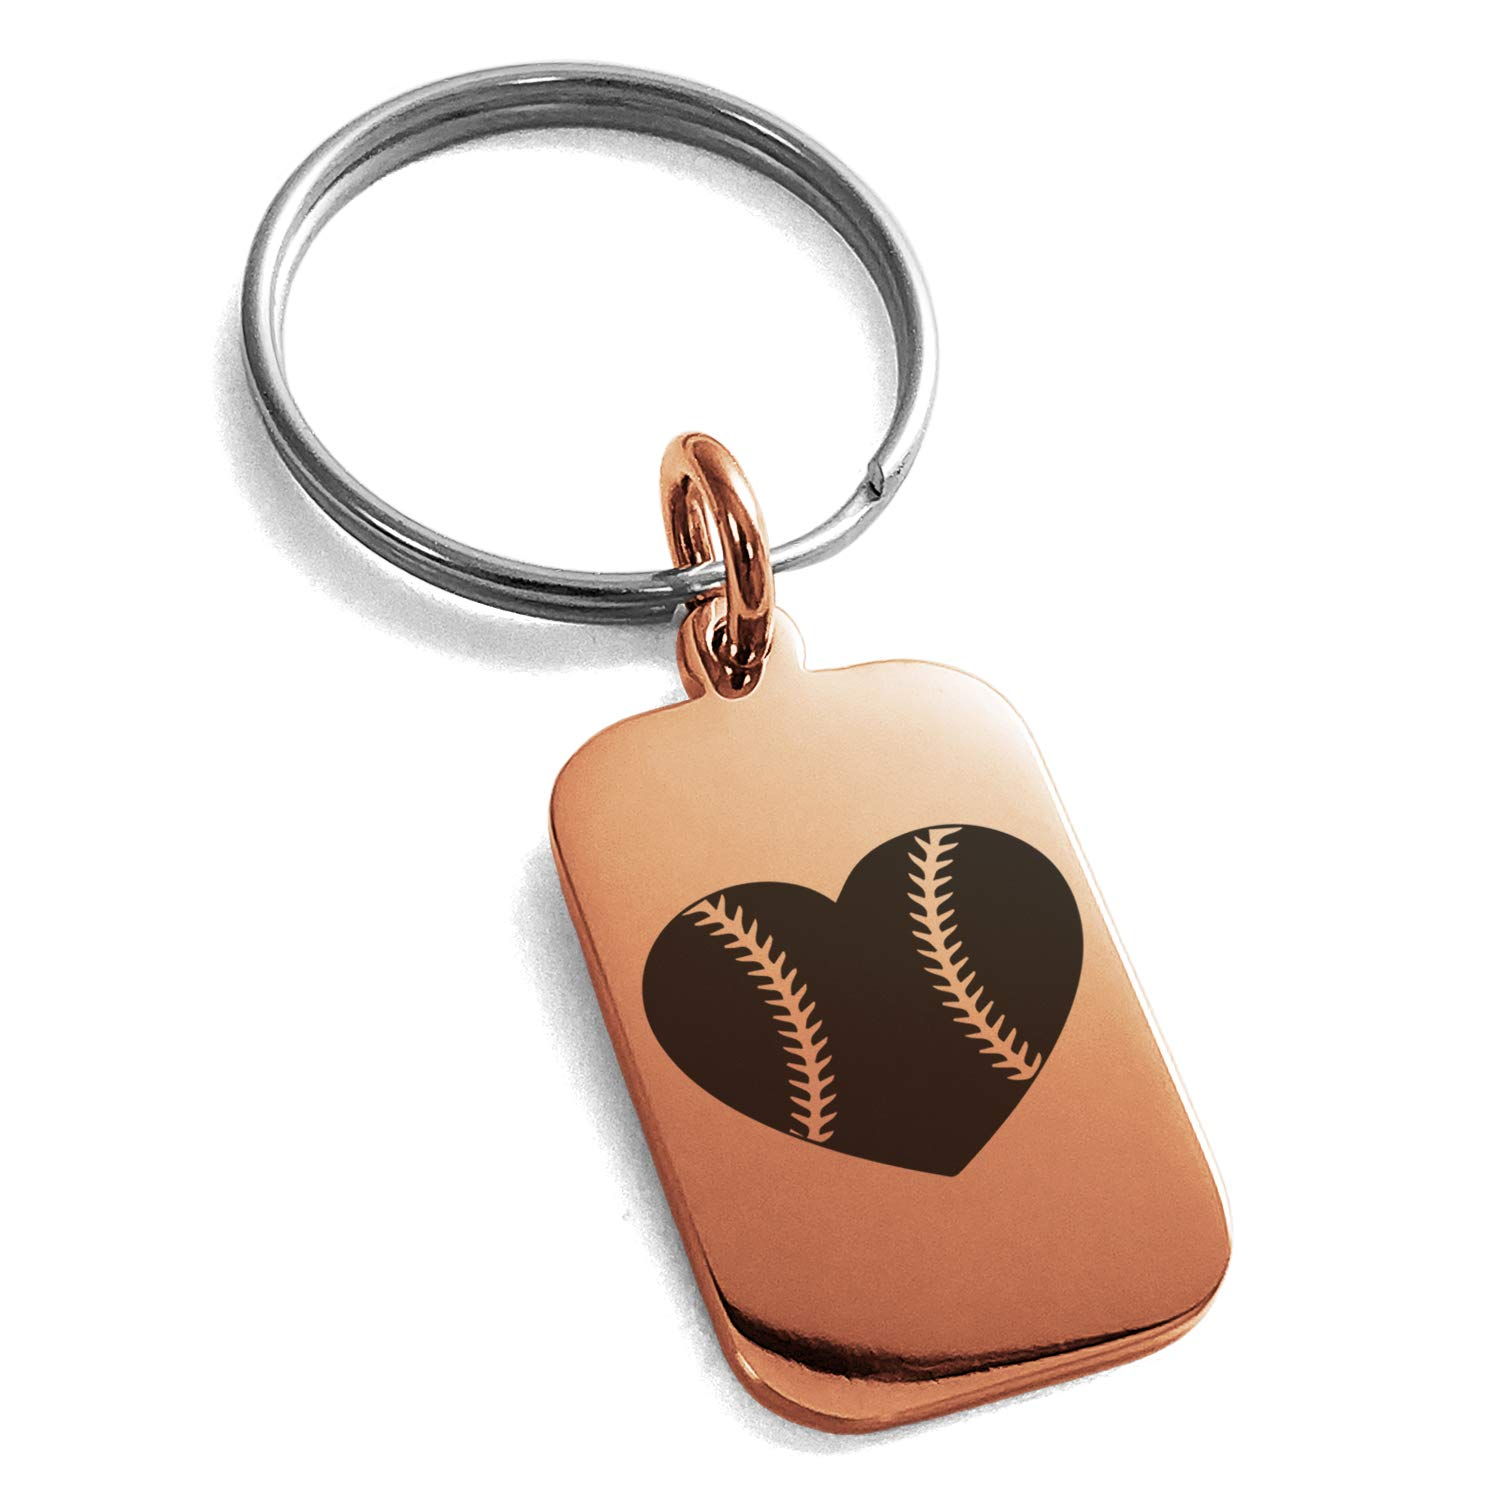 Tioneer Rose Gold Plated Stainless Steel Love Baseball Heart Engraved Small Rectangle Dog Tag Charm Keychain Keyring